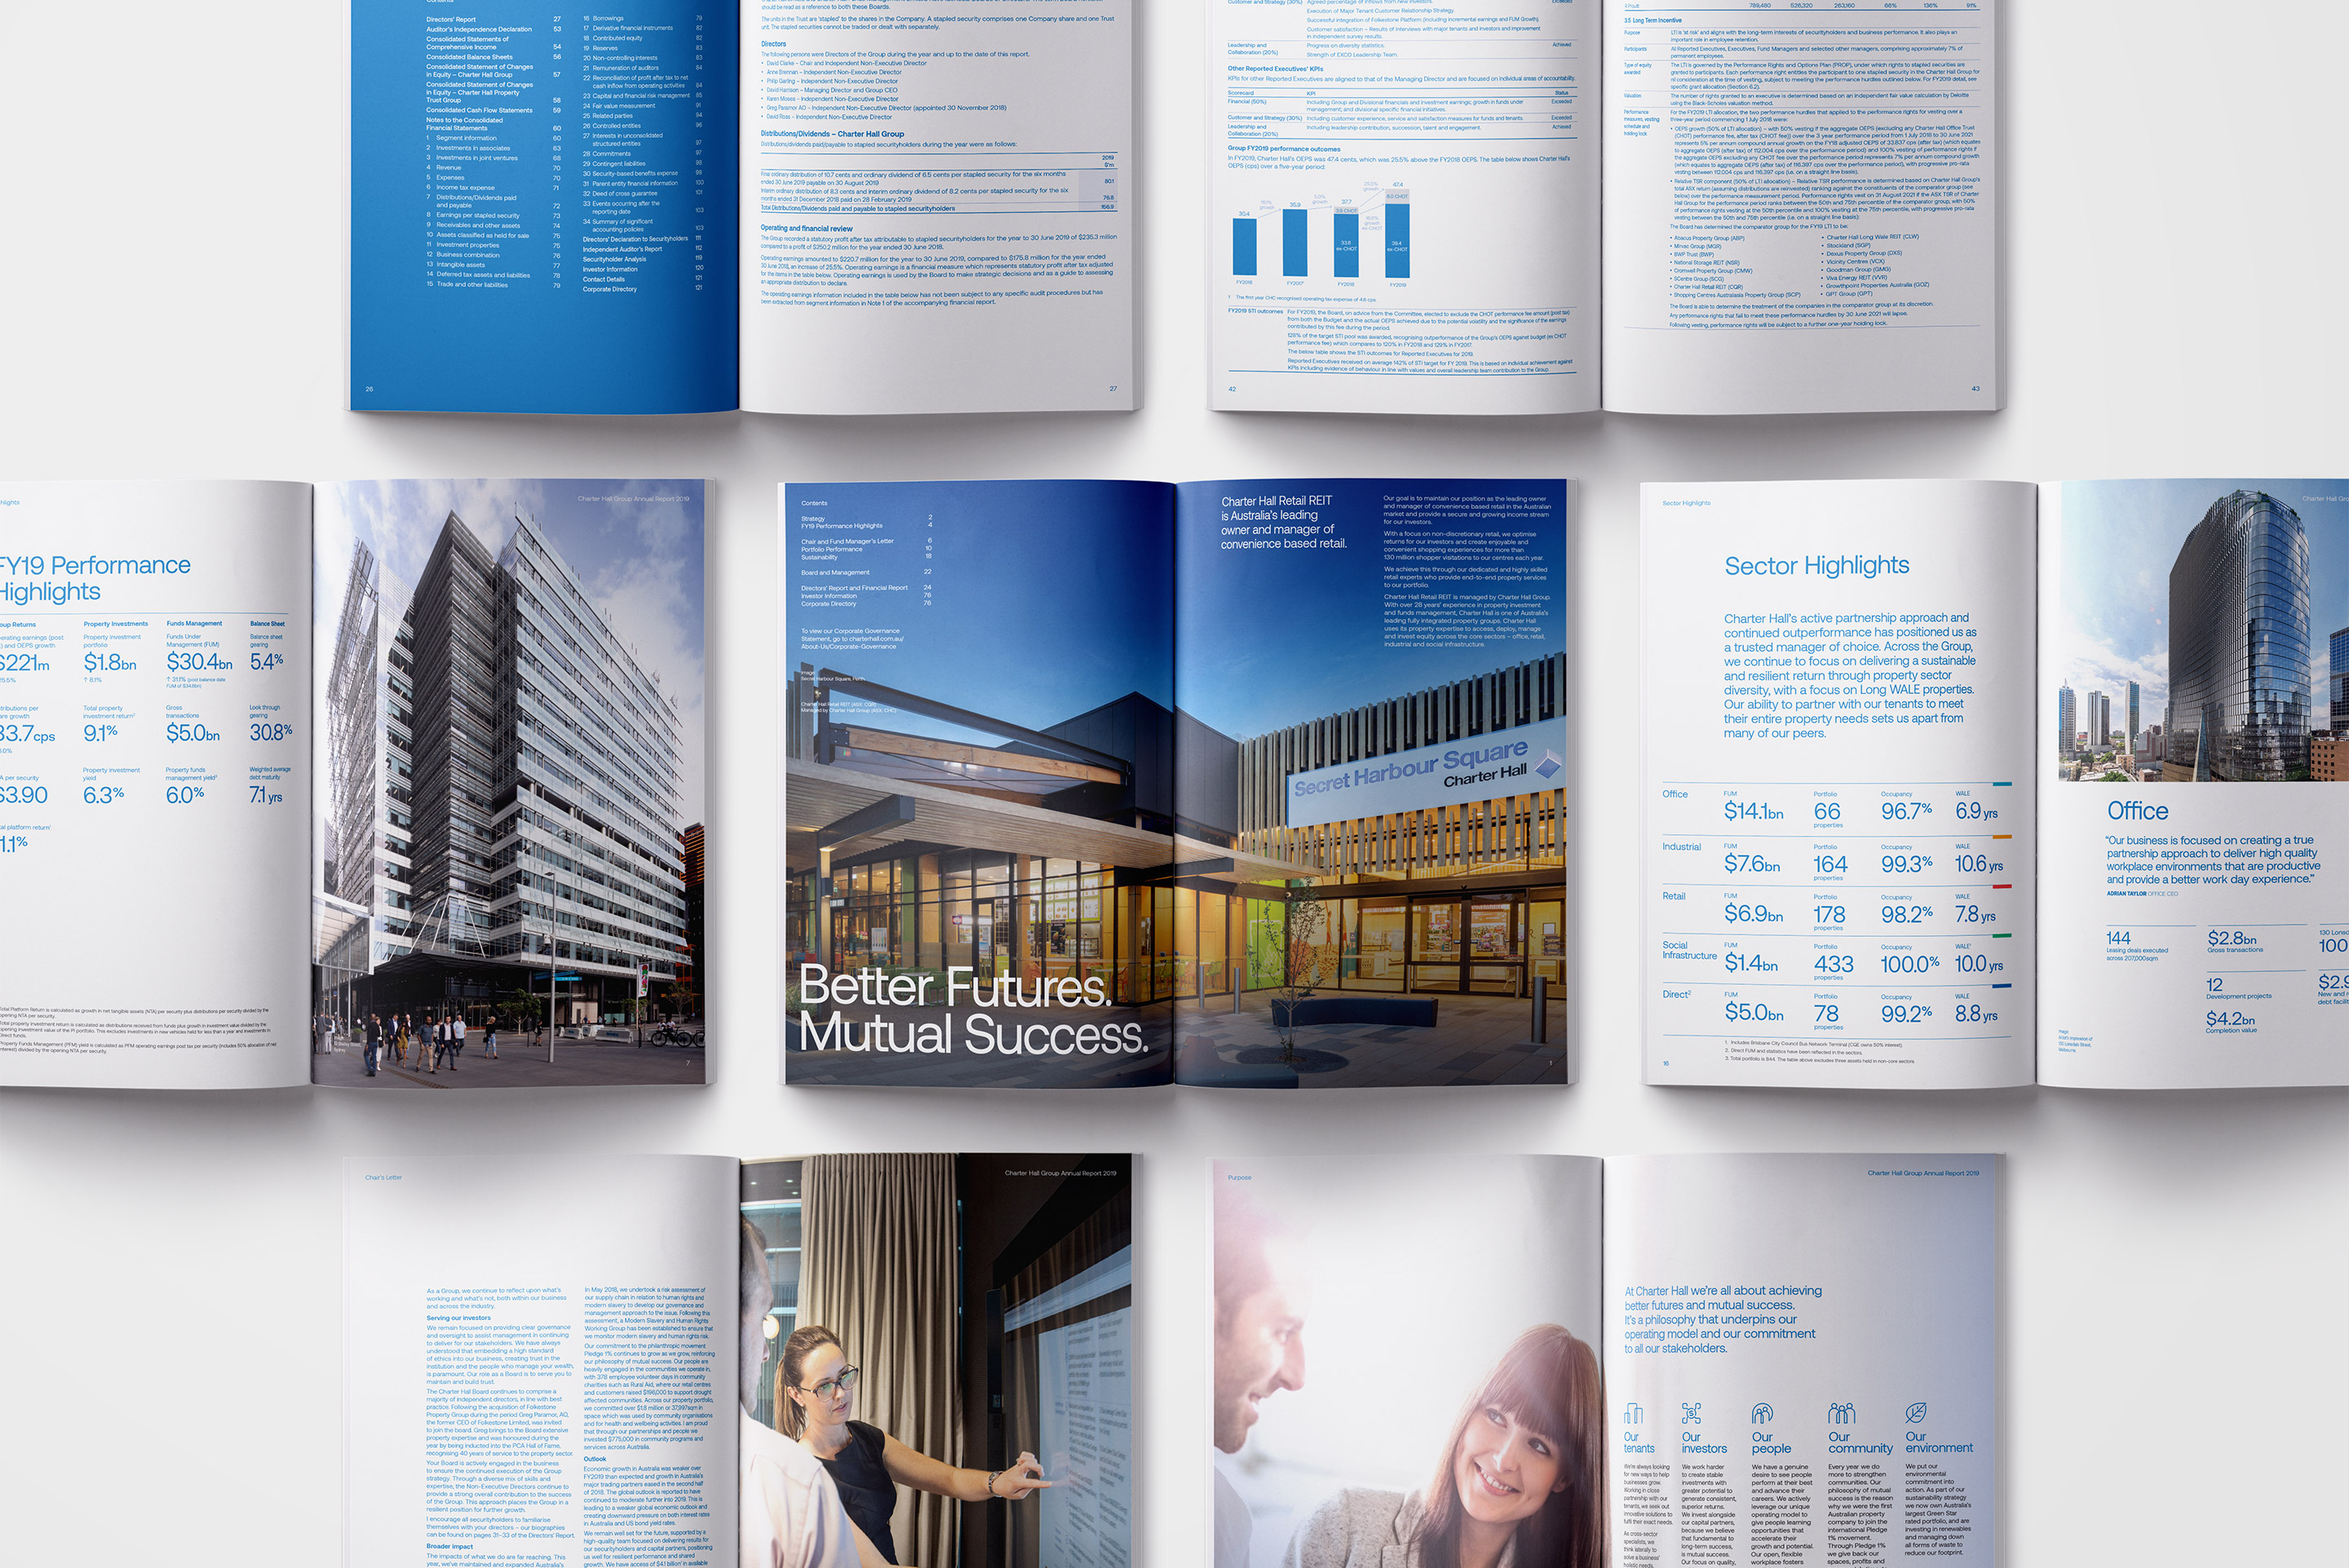 Charter Hall Annual Report. Inside spread page designs overview.